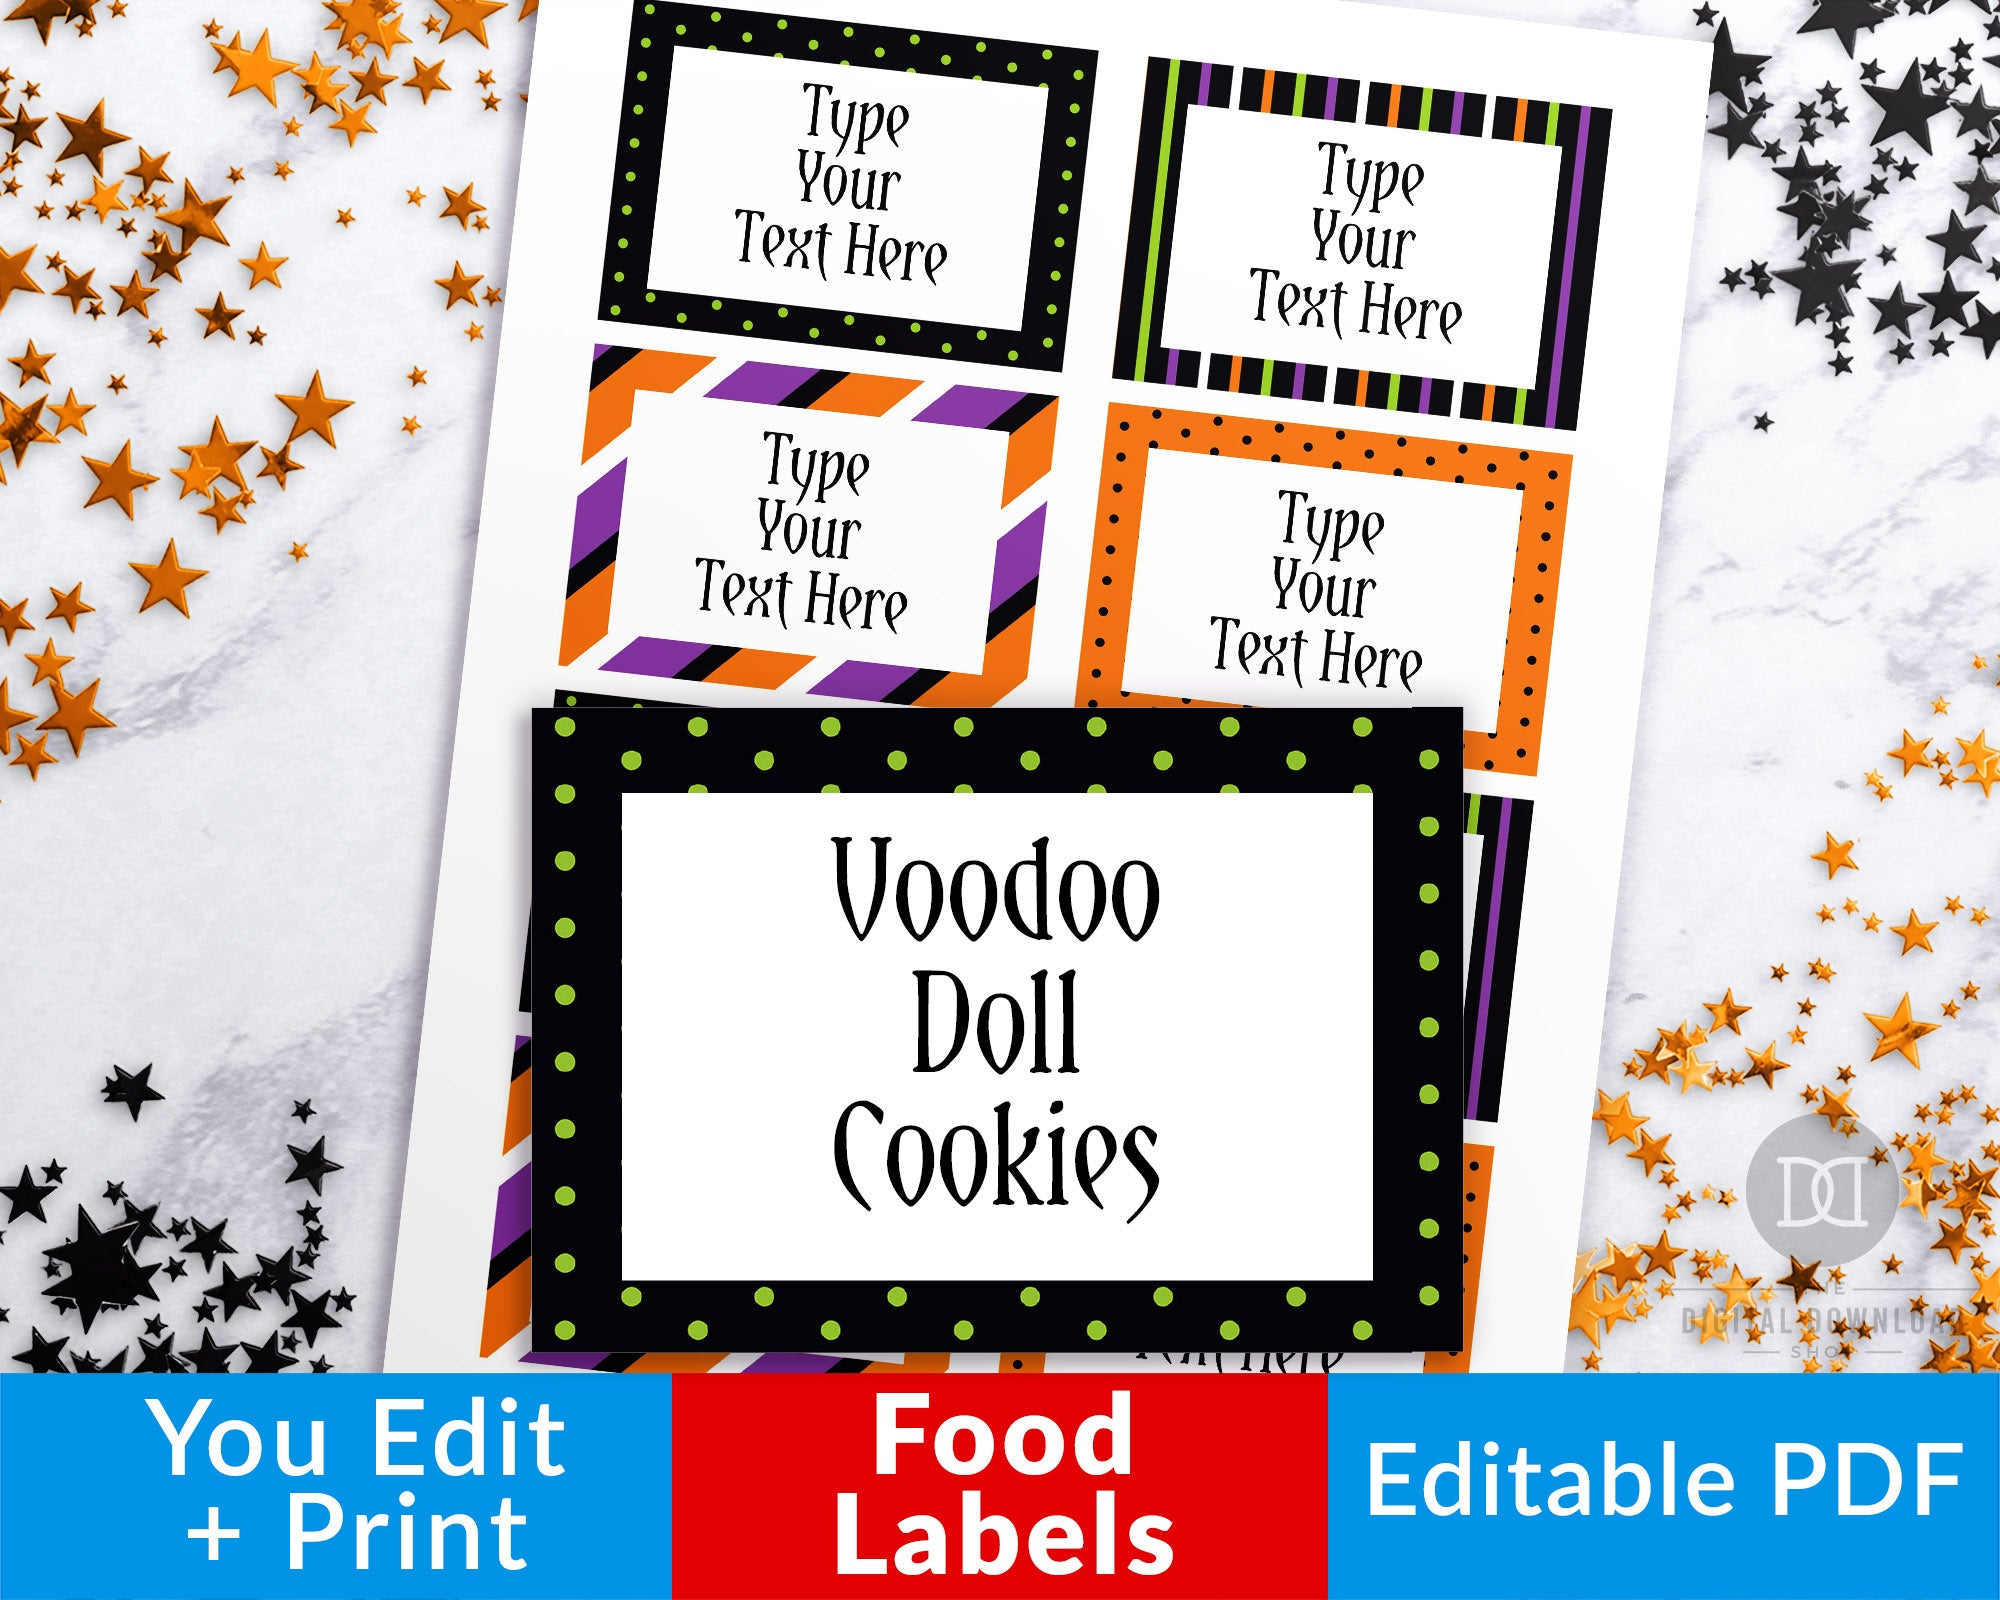 photograph regarding Printable Halloween Labels titled Halloween Foods Labels Printable Editable